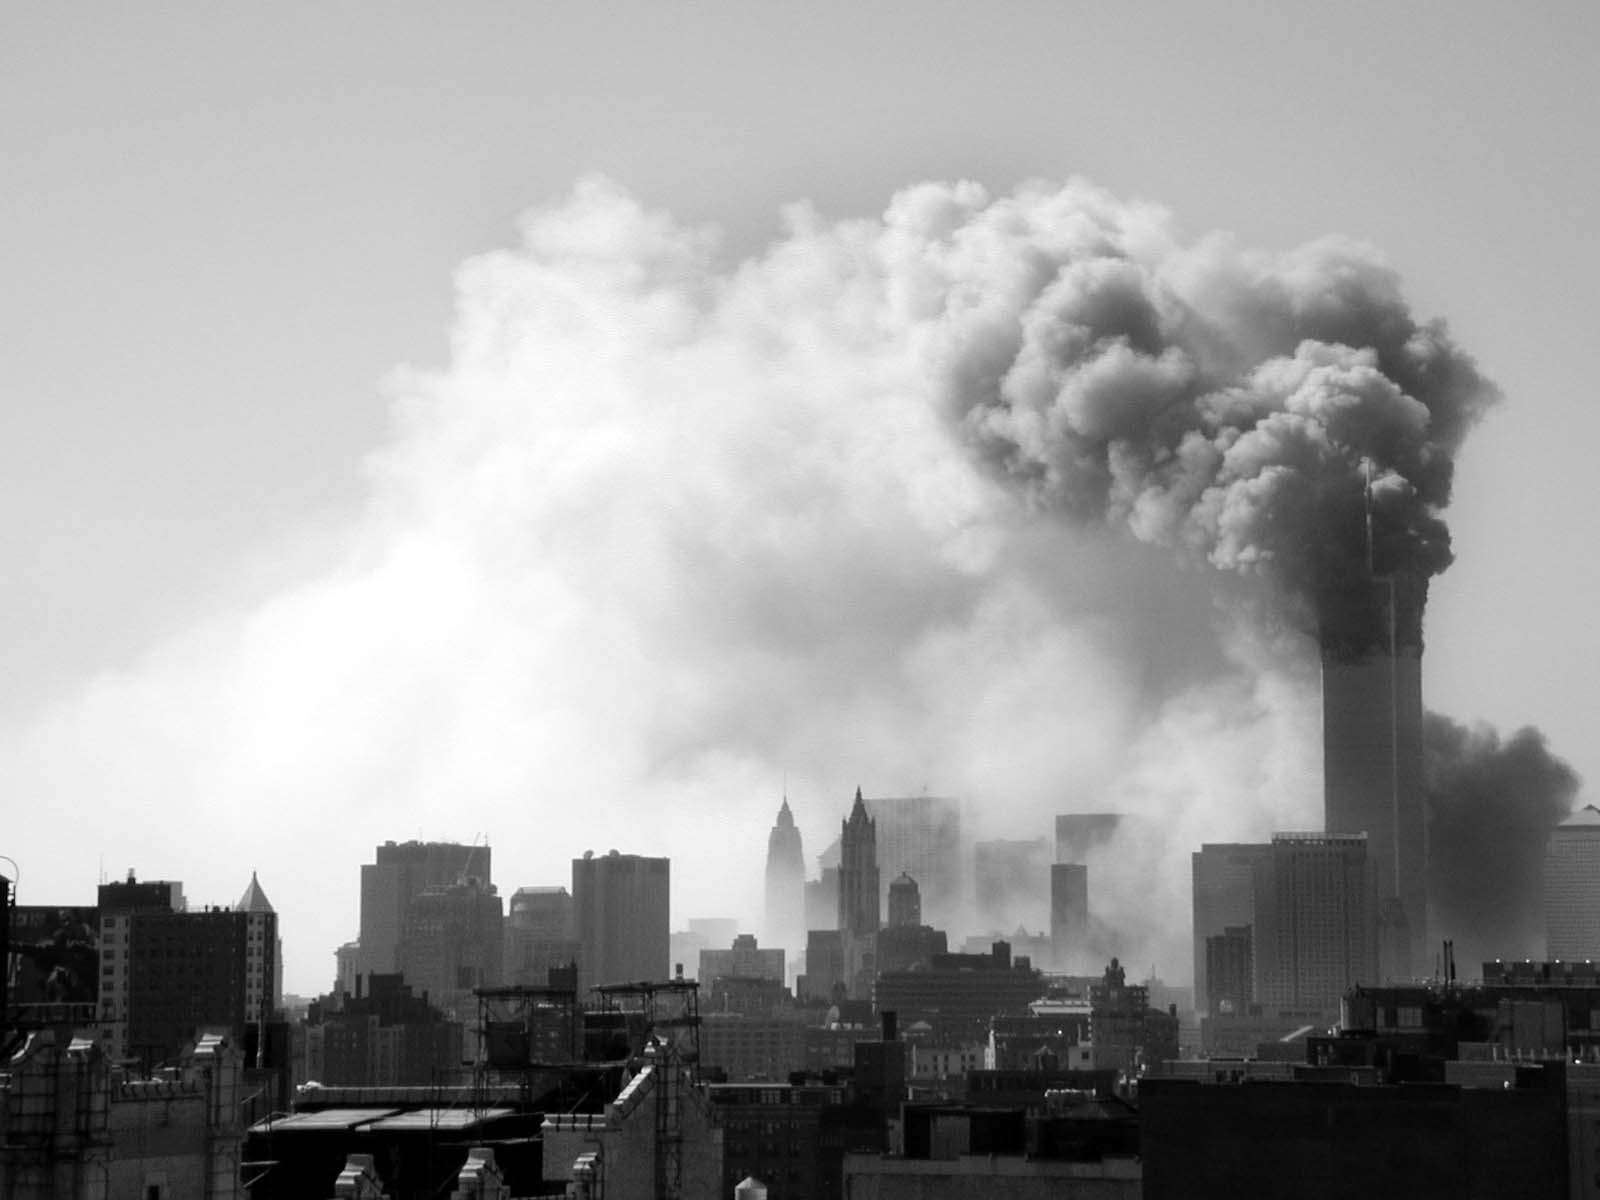 021 - 10.20AM - north tower burning, trail of smoke to the east